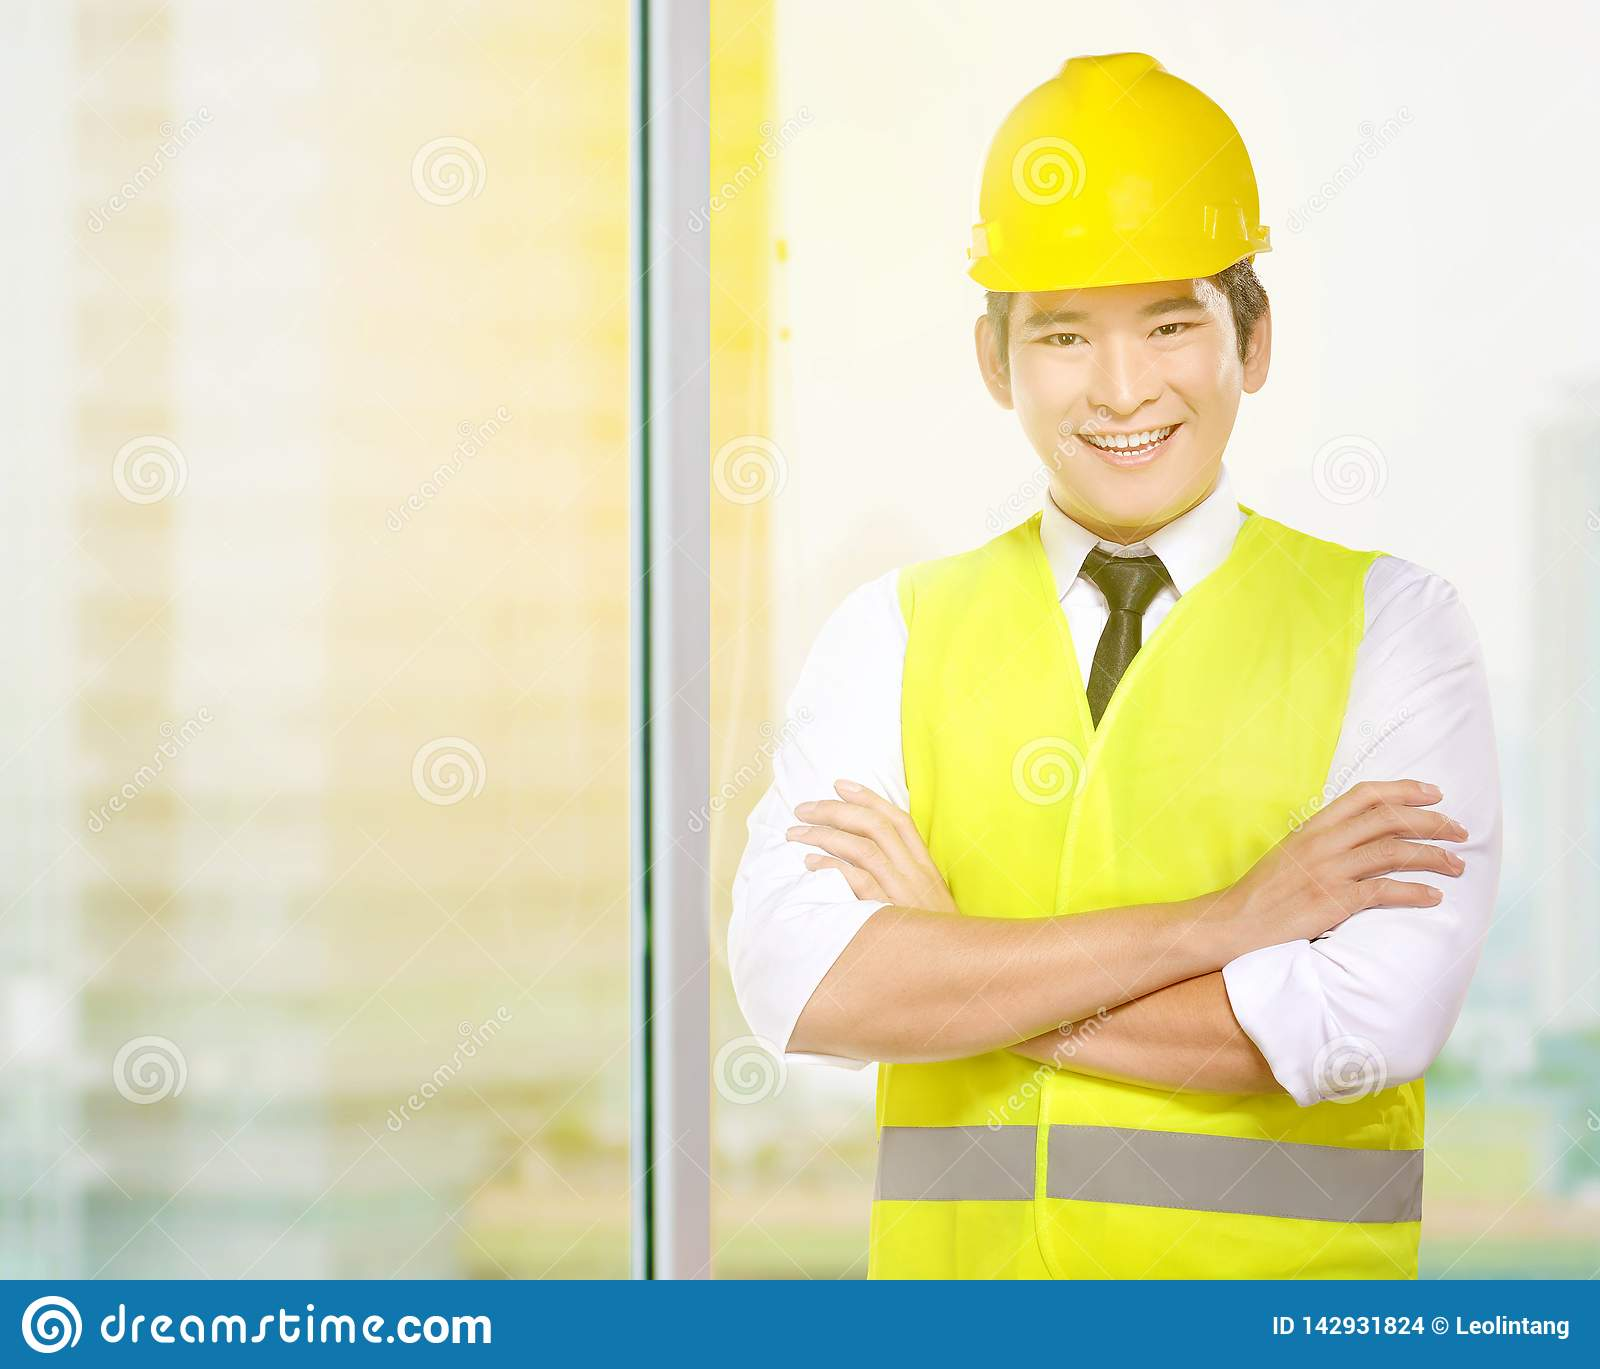 Young asian worker man in safety vest and yellow helmet standing in the office room